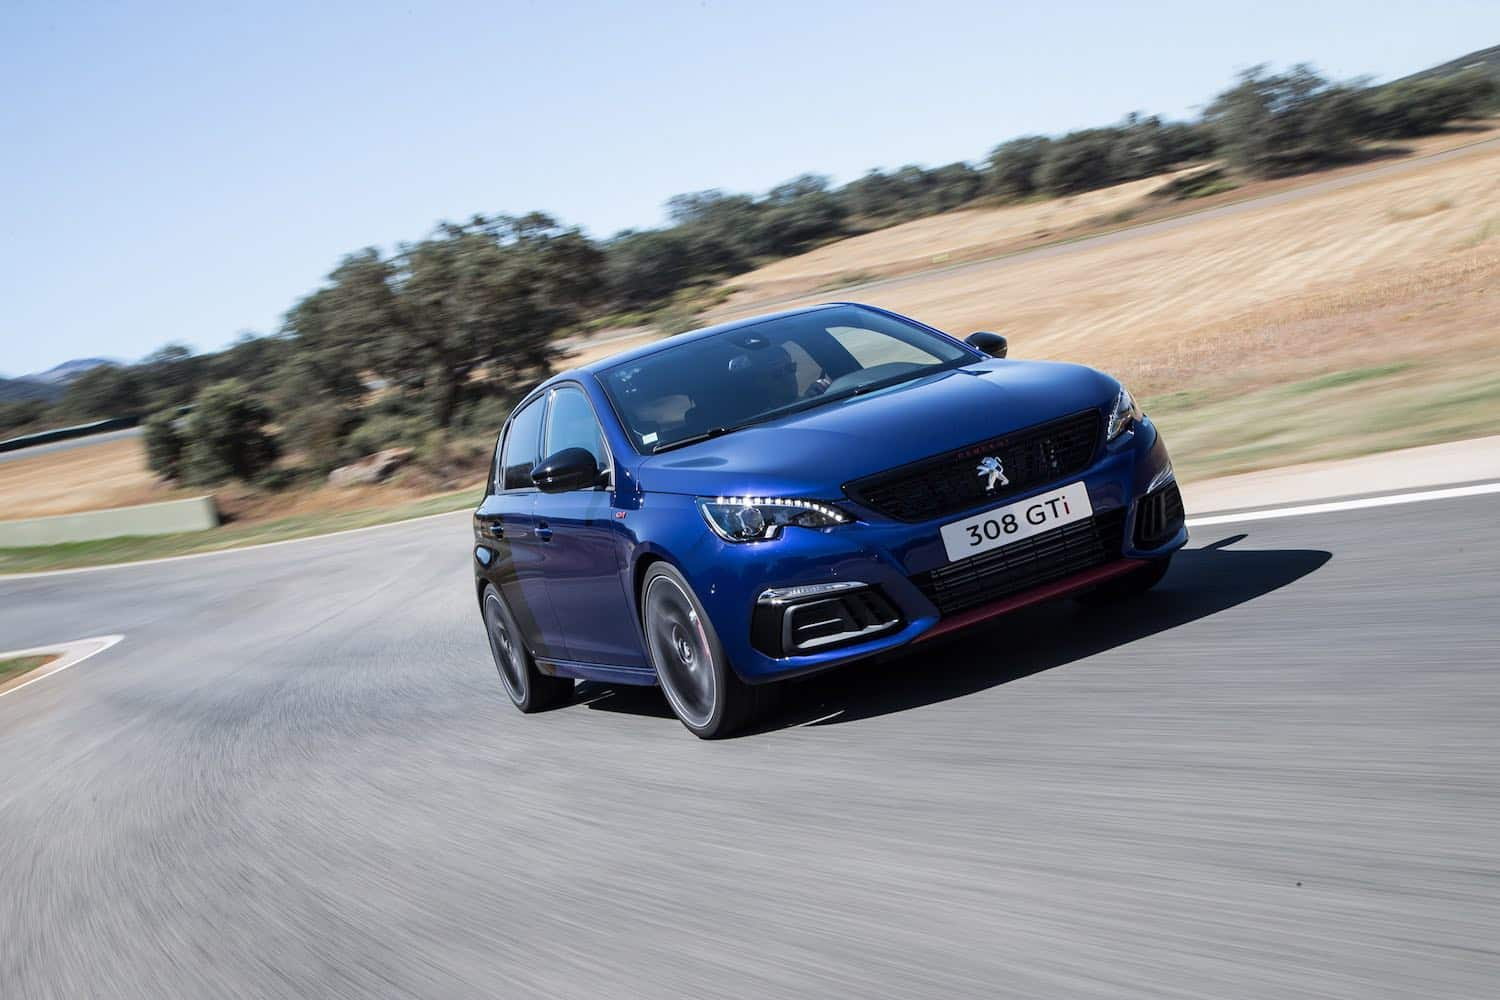 Peugeot 308 GTi road test 2018 | The Car Expert